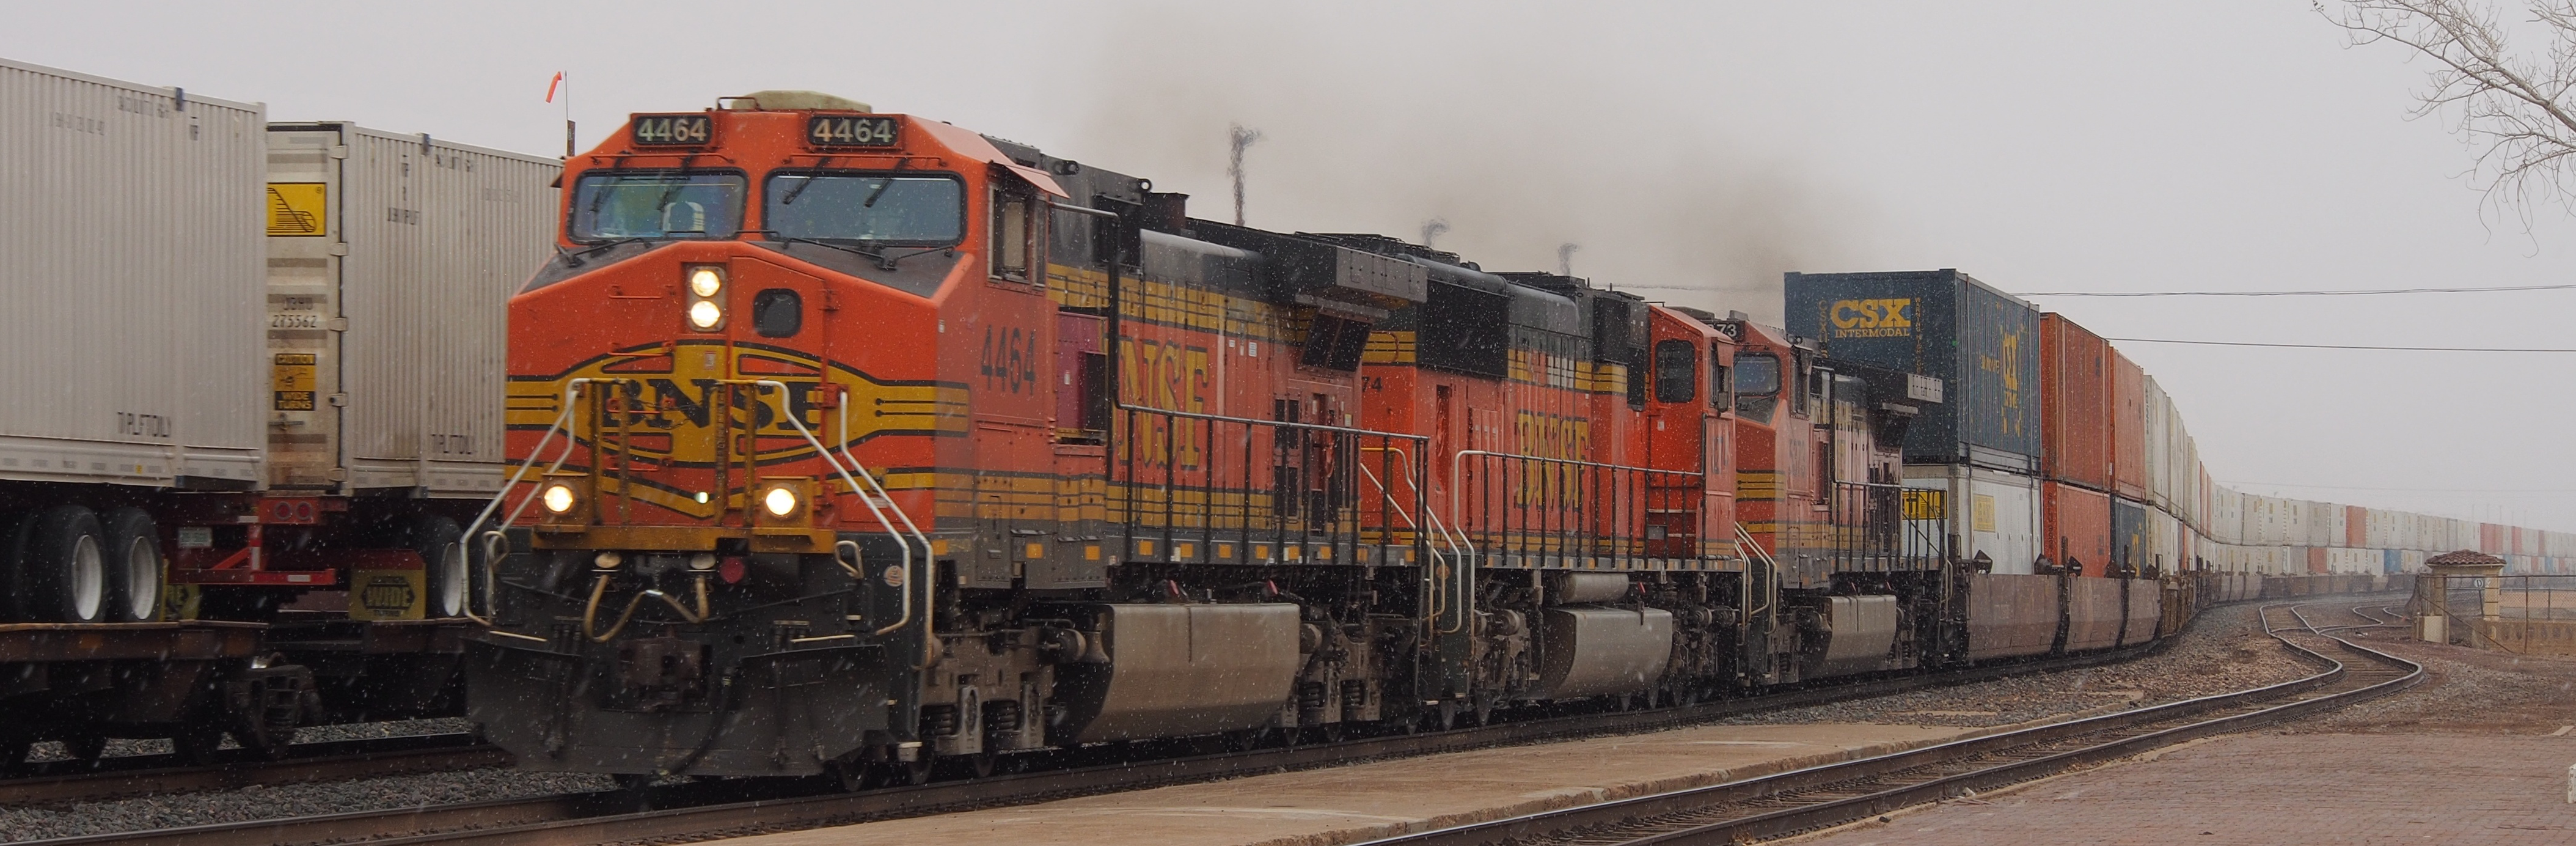 File:BNSF train.png - PNG Image Of Train